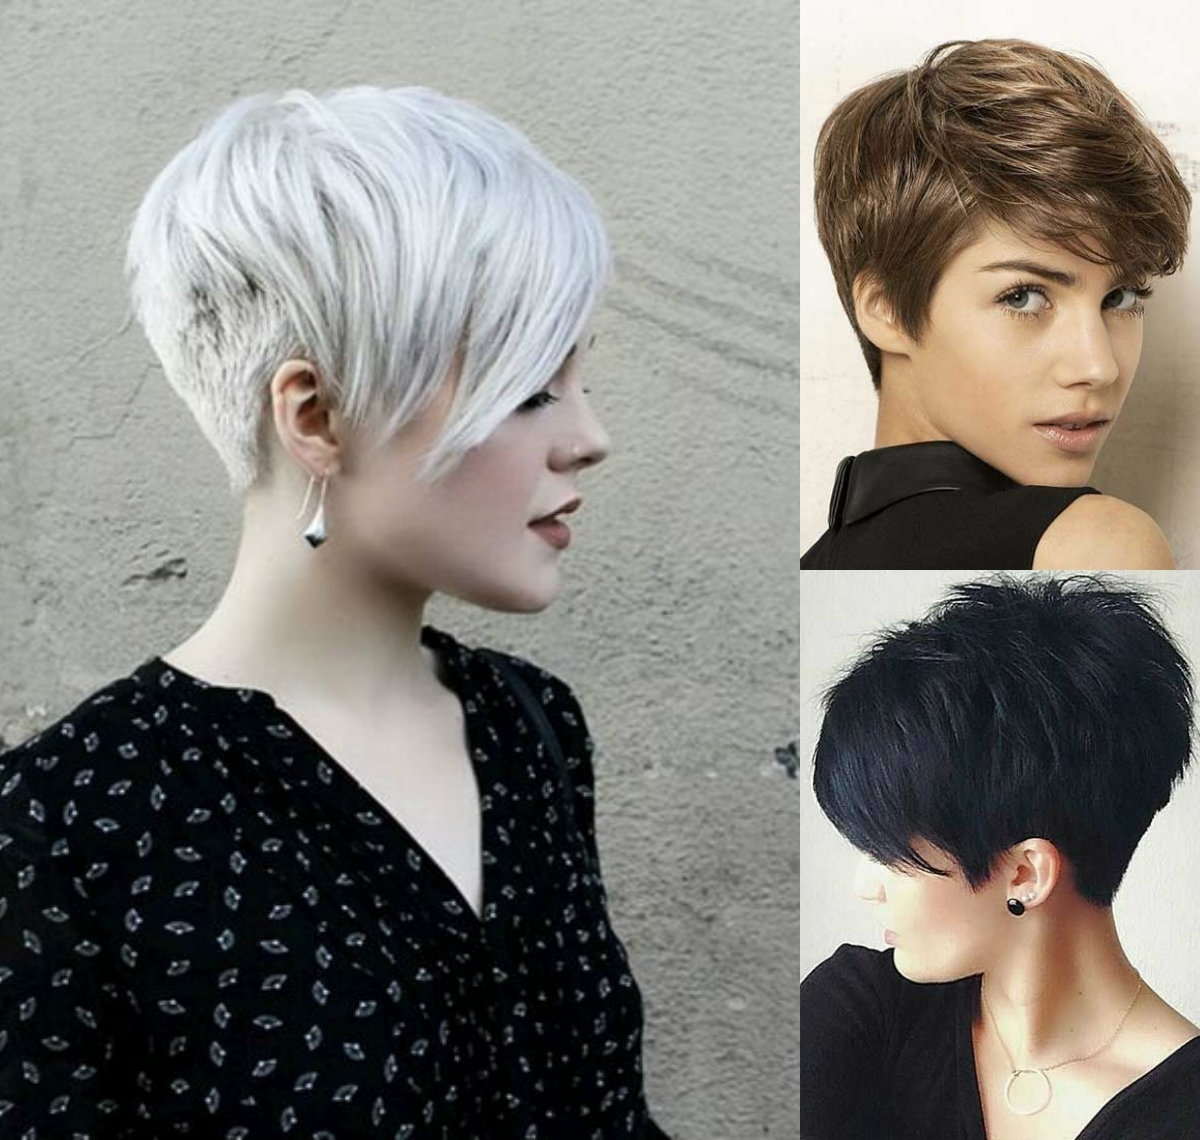 15 Best Collection Of Layered Pixie Hairstyles